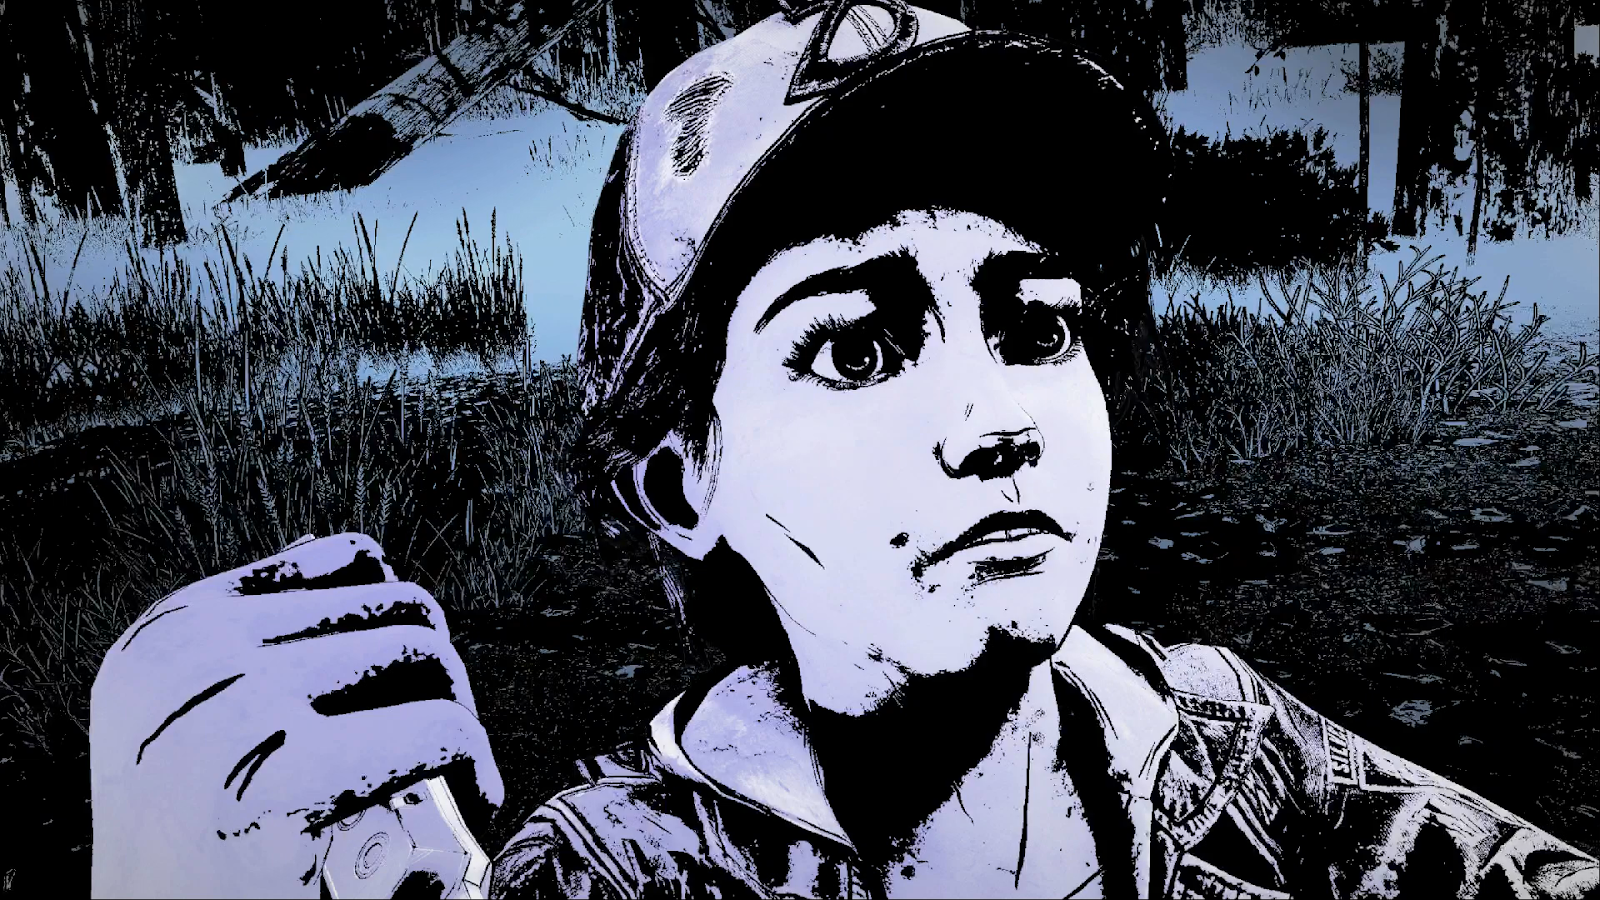 The Walking Dead Is Still Alive, But The Latest Episode Feels Shaky